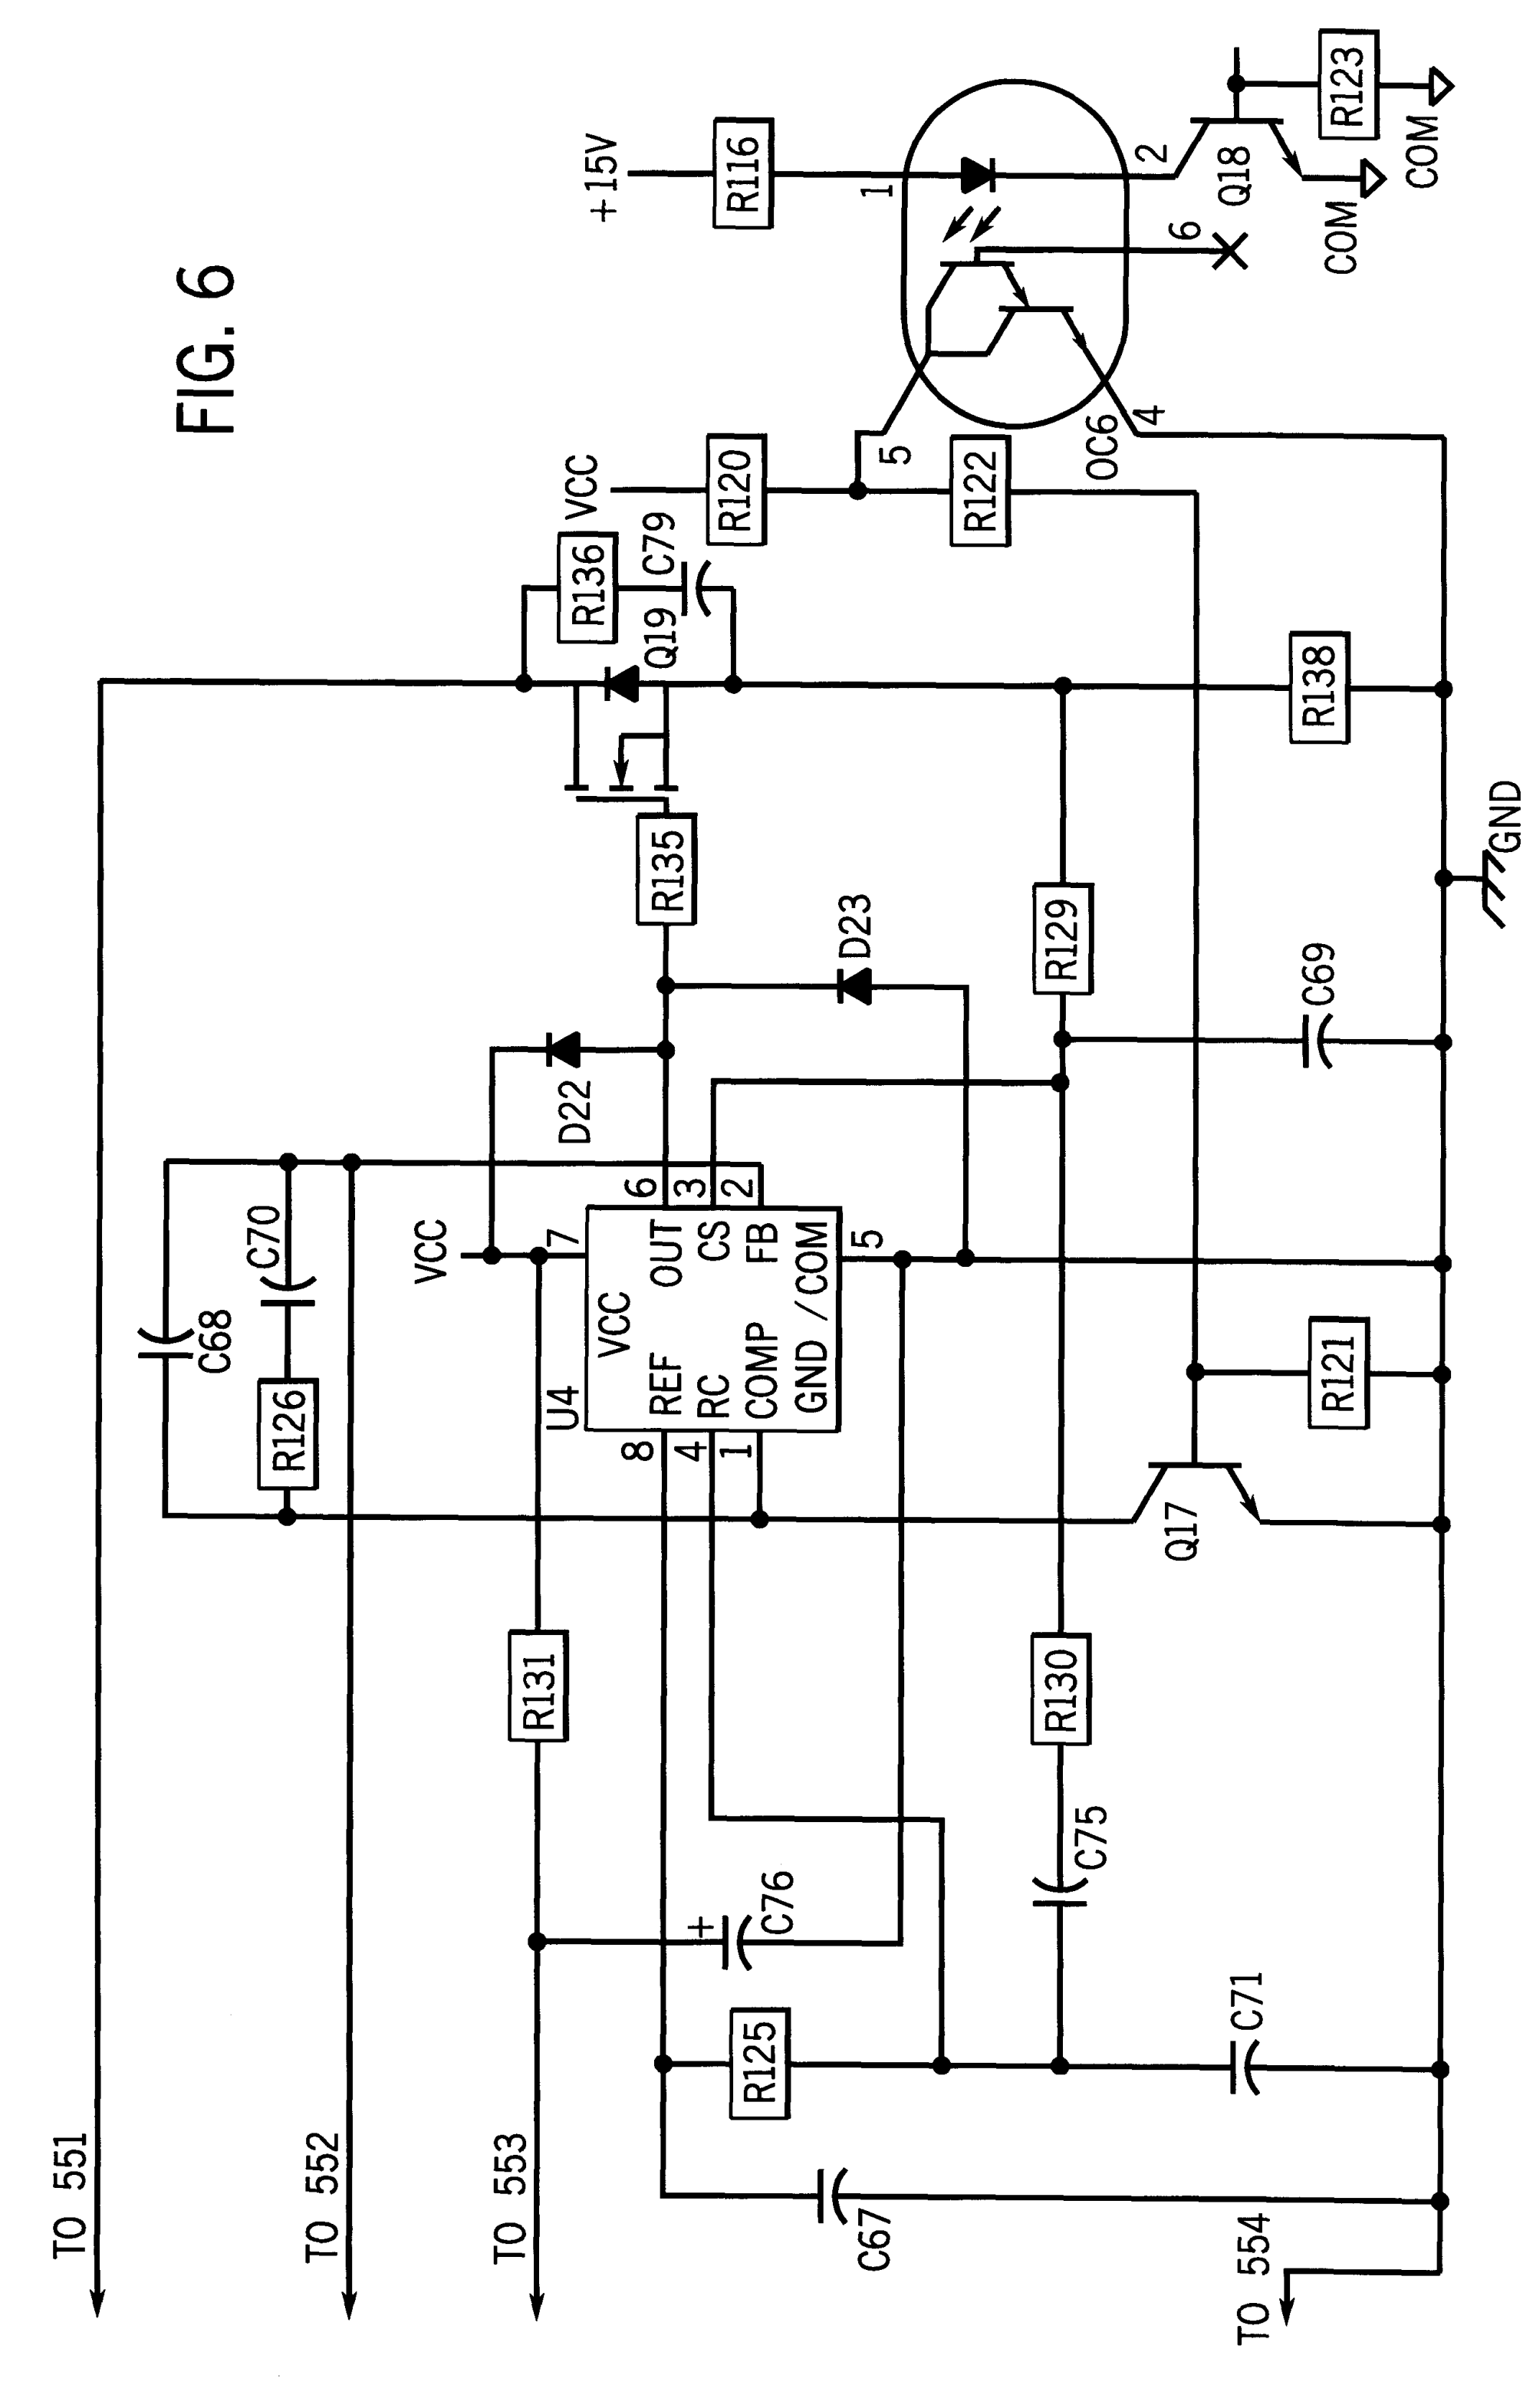 hight resolution of us06194682 20010227 d00005 patent us6194682 plasma cutter with integrated air compressor plasma cutter circuit diagram at